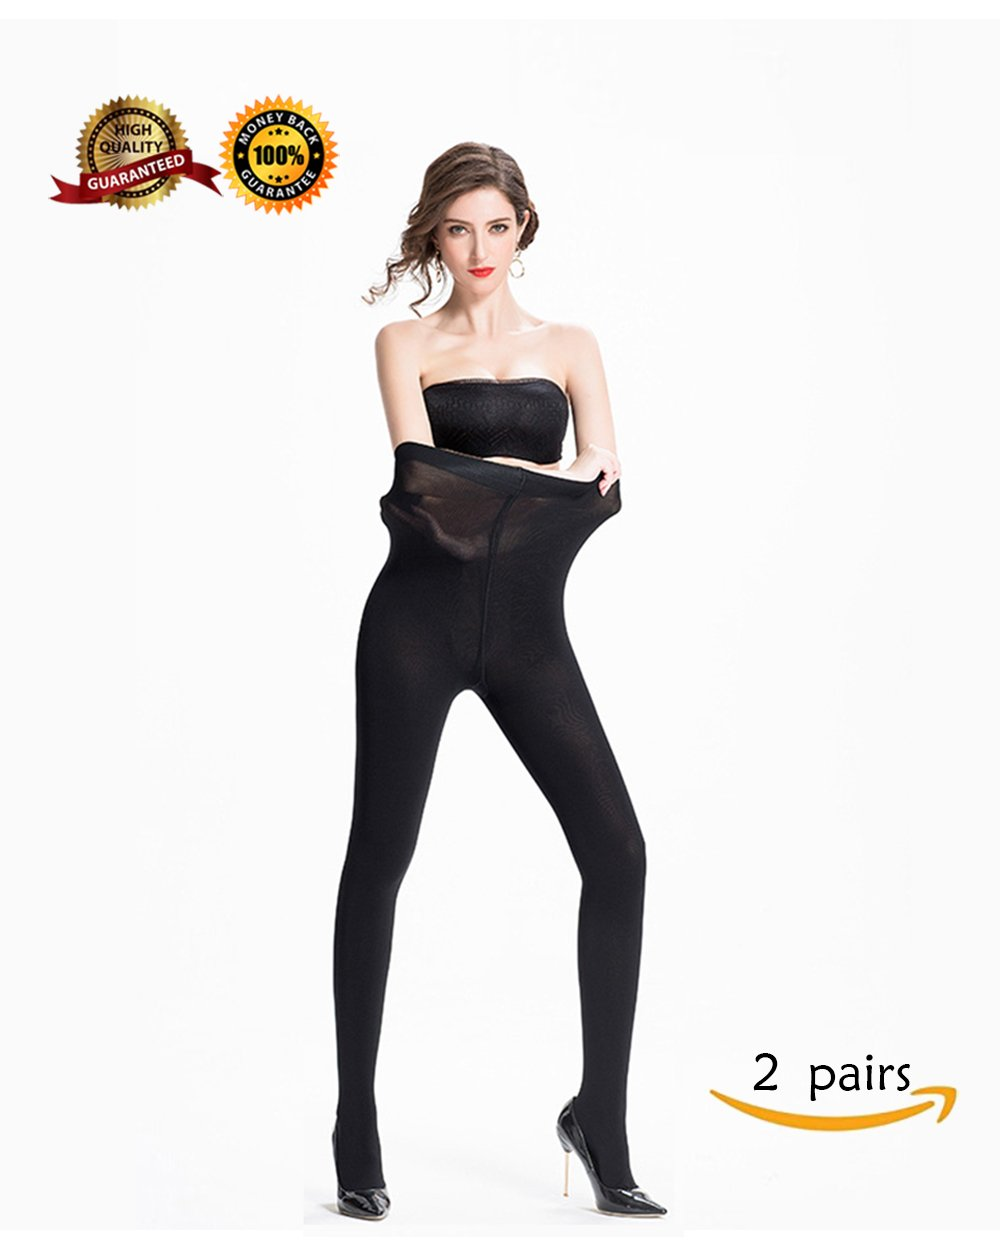 Opaque Tights Comfortable and Durable Pantyhose for Women 2 Pairs High Elastic Stockings Black M Size…